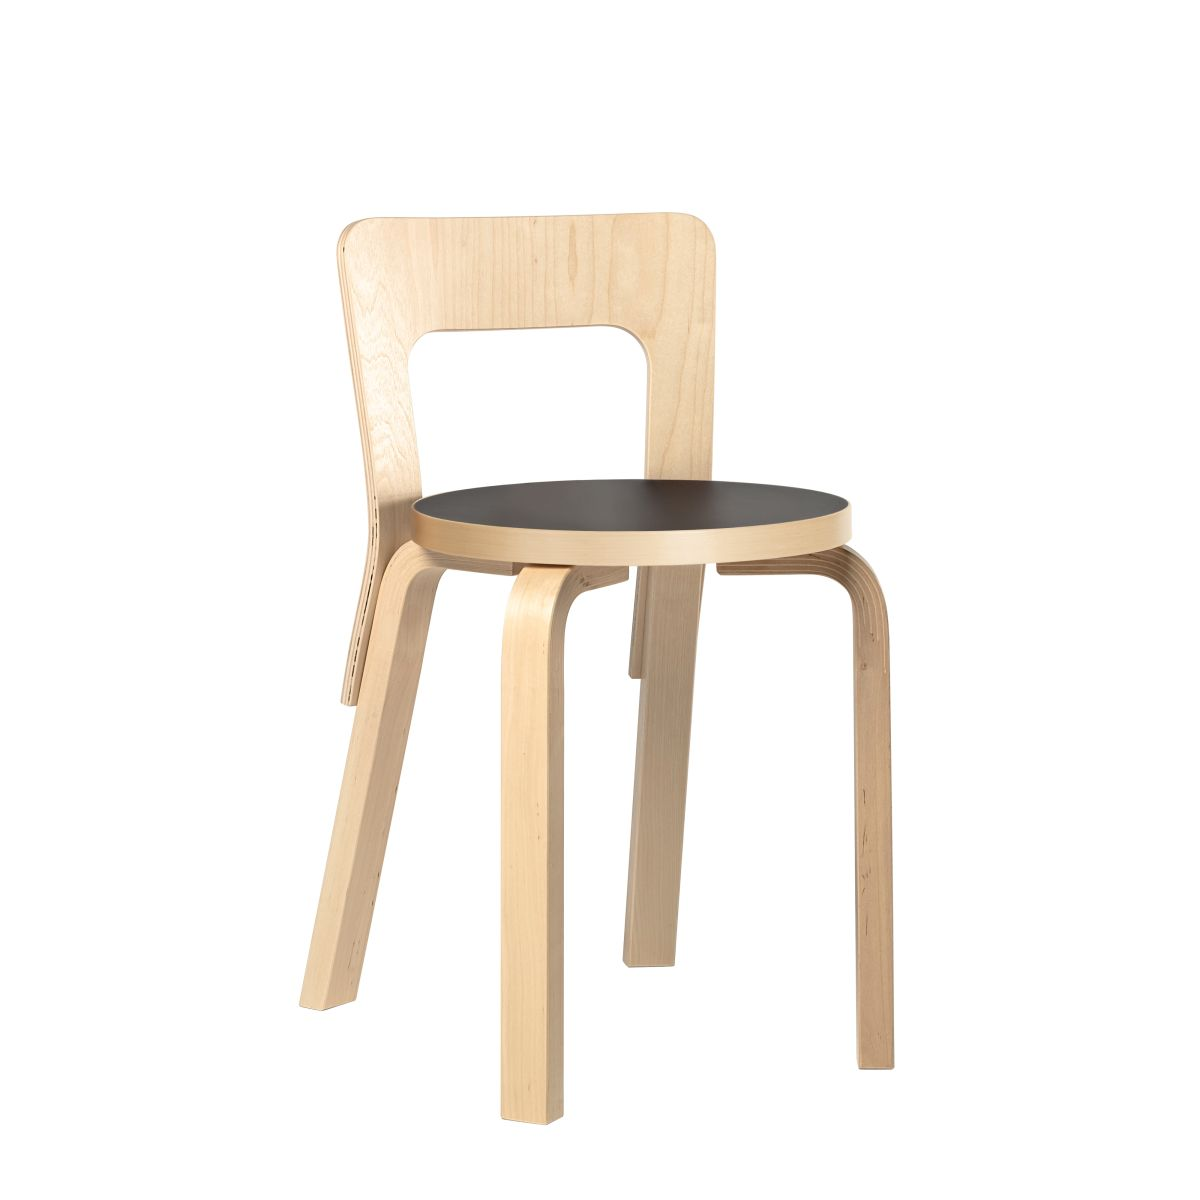 Chair 65 legs birch_Top black linoleum